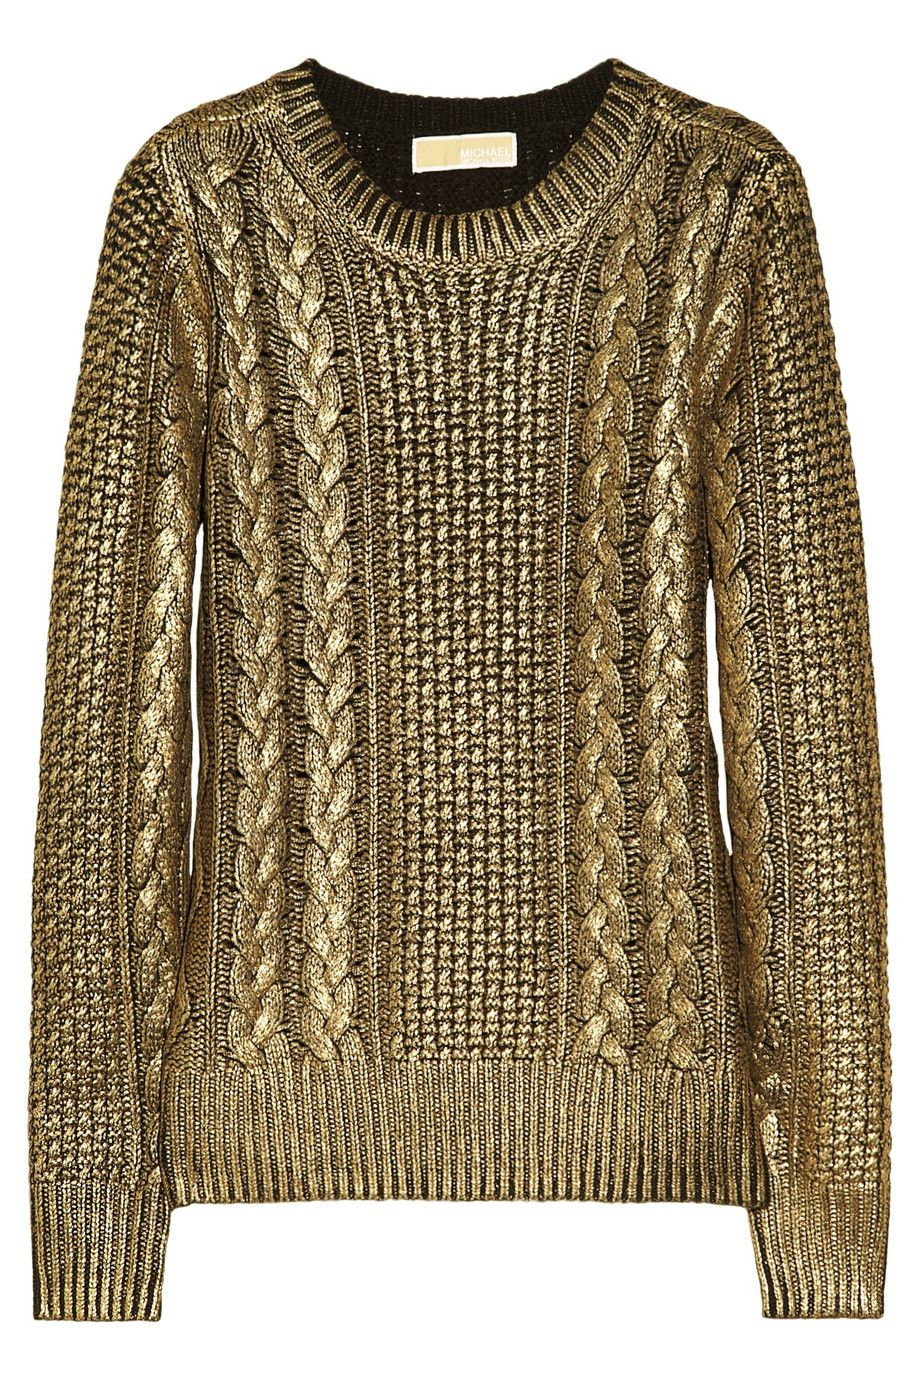 Michael Michael Kors Metalliccoated Cableknit Sweater in Gold ...